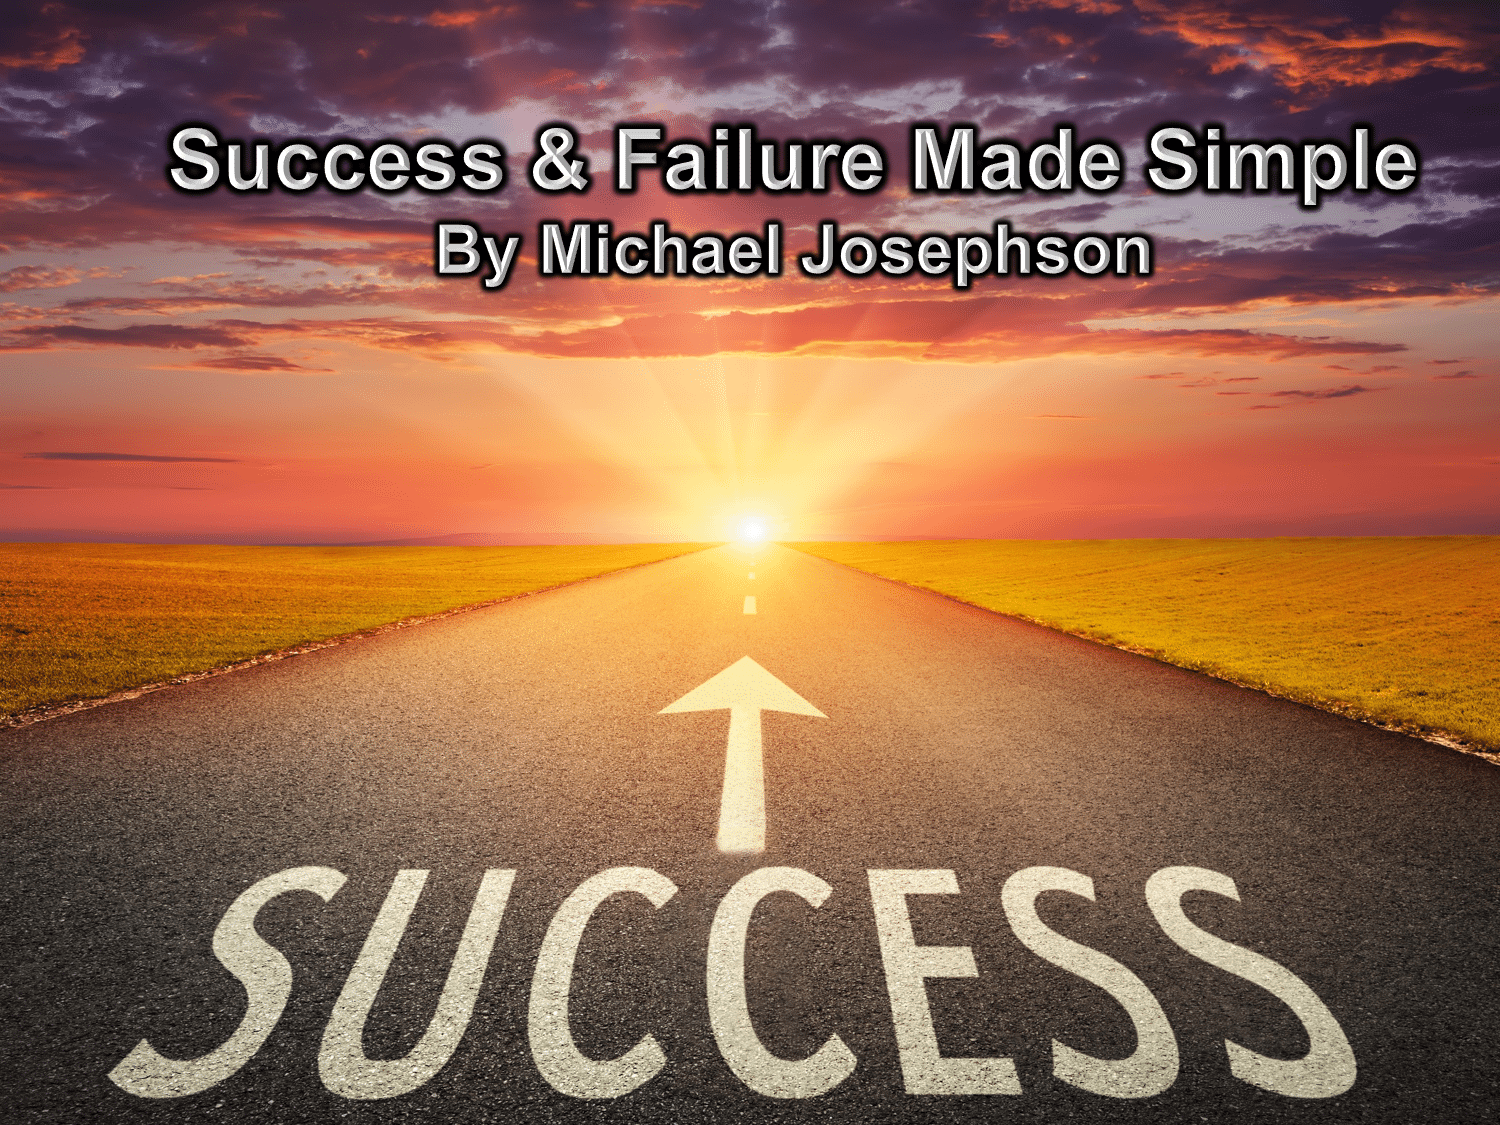 Success & Failure Made Simple